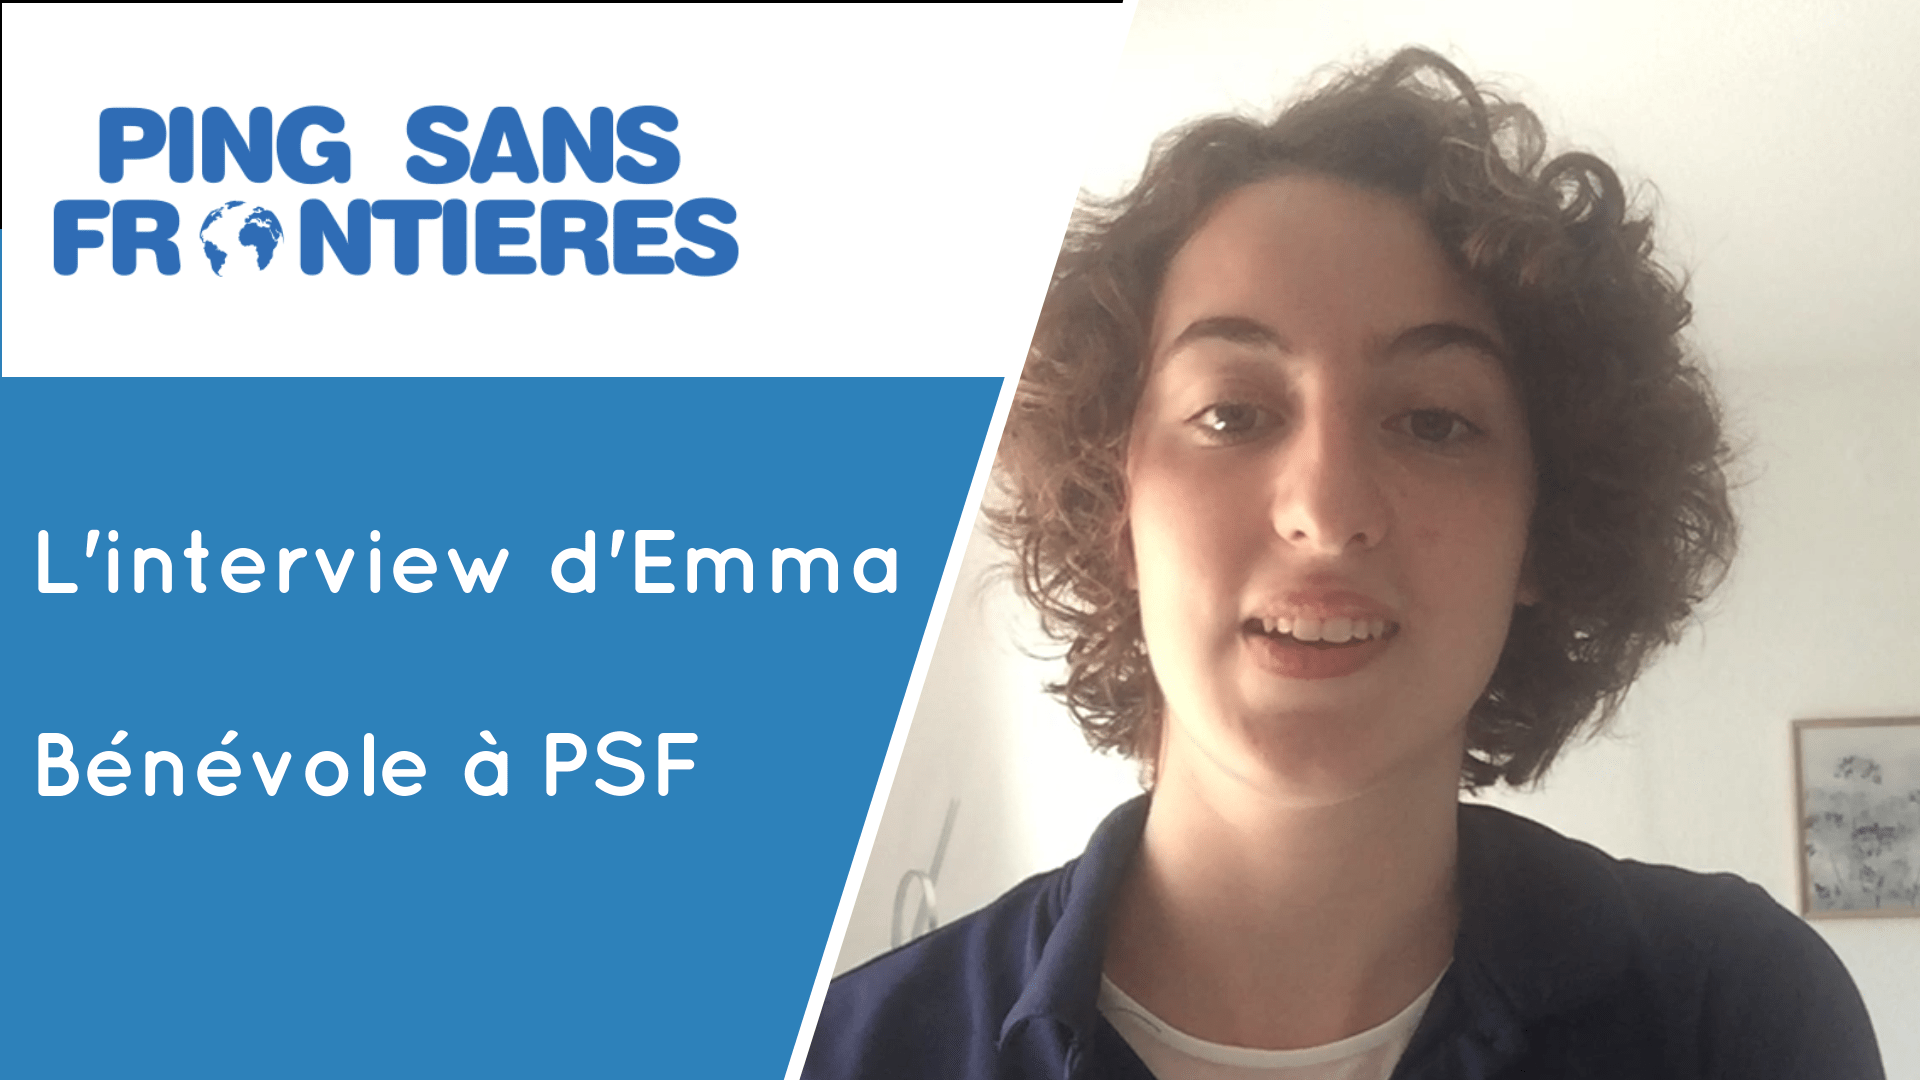 Emma's impression of her internship performed within PSF.